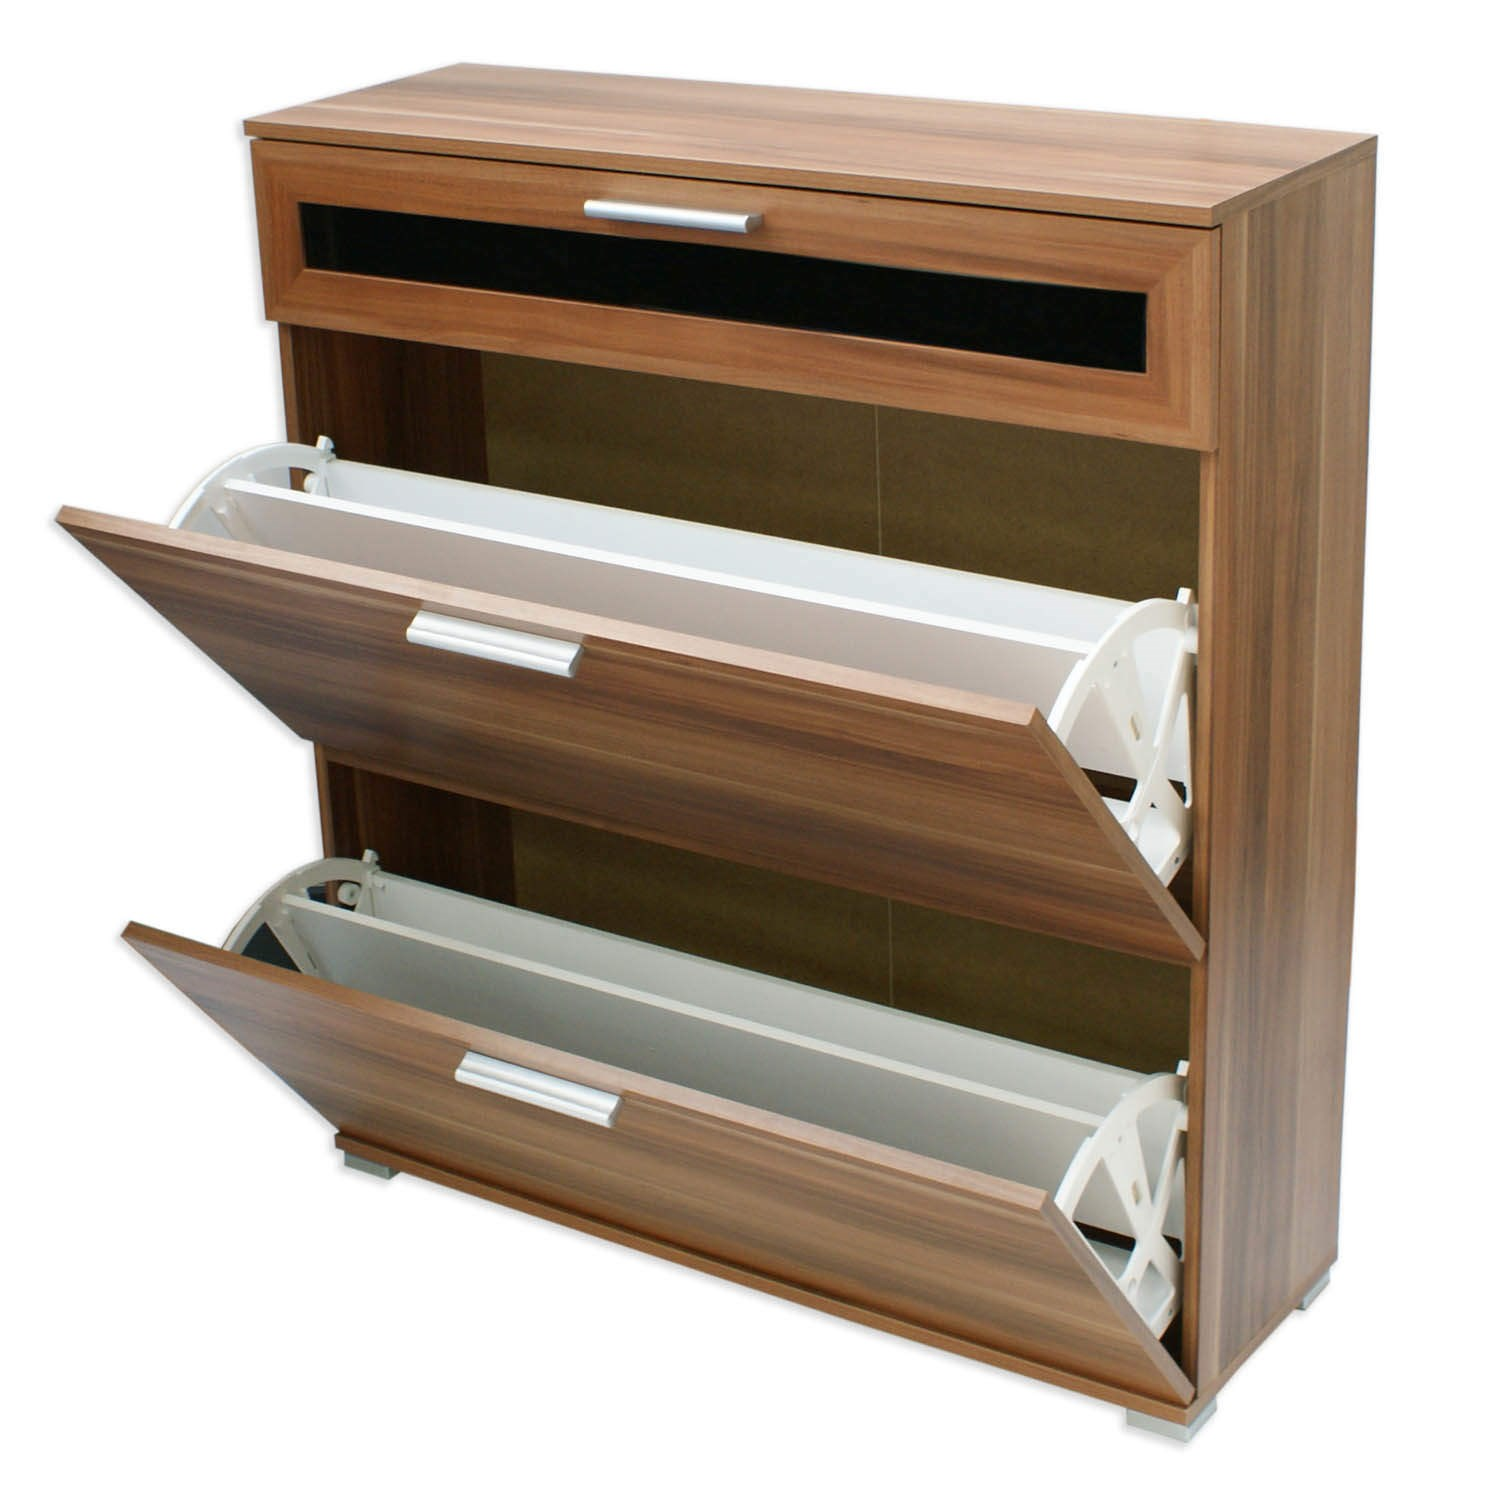 Modern Walnut Alaska Shoe Cabinet Slim Space Saving